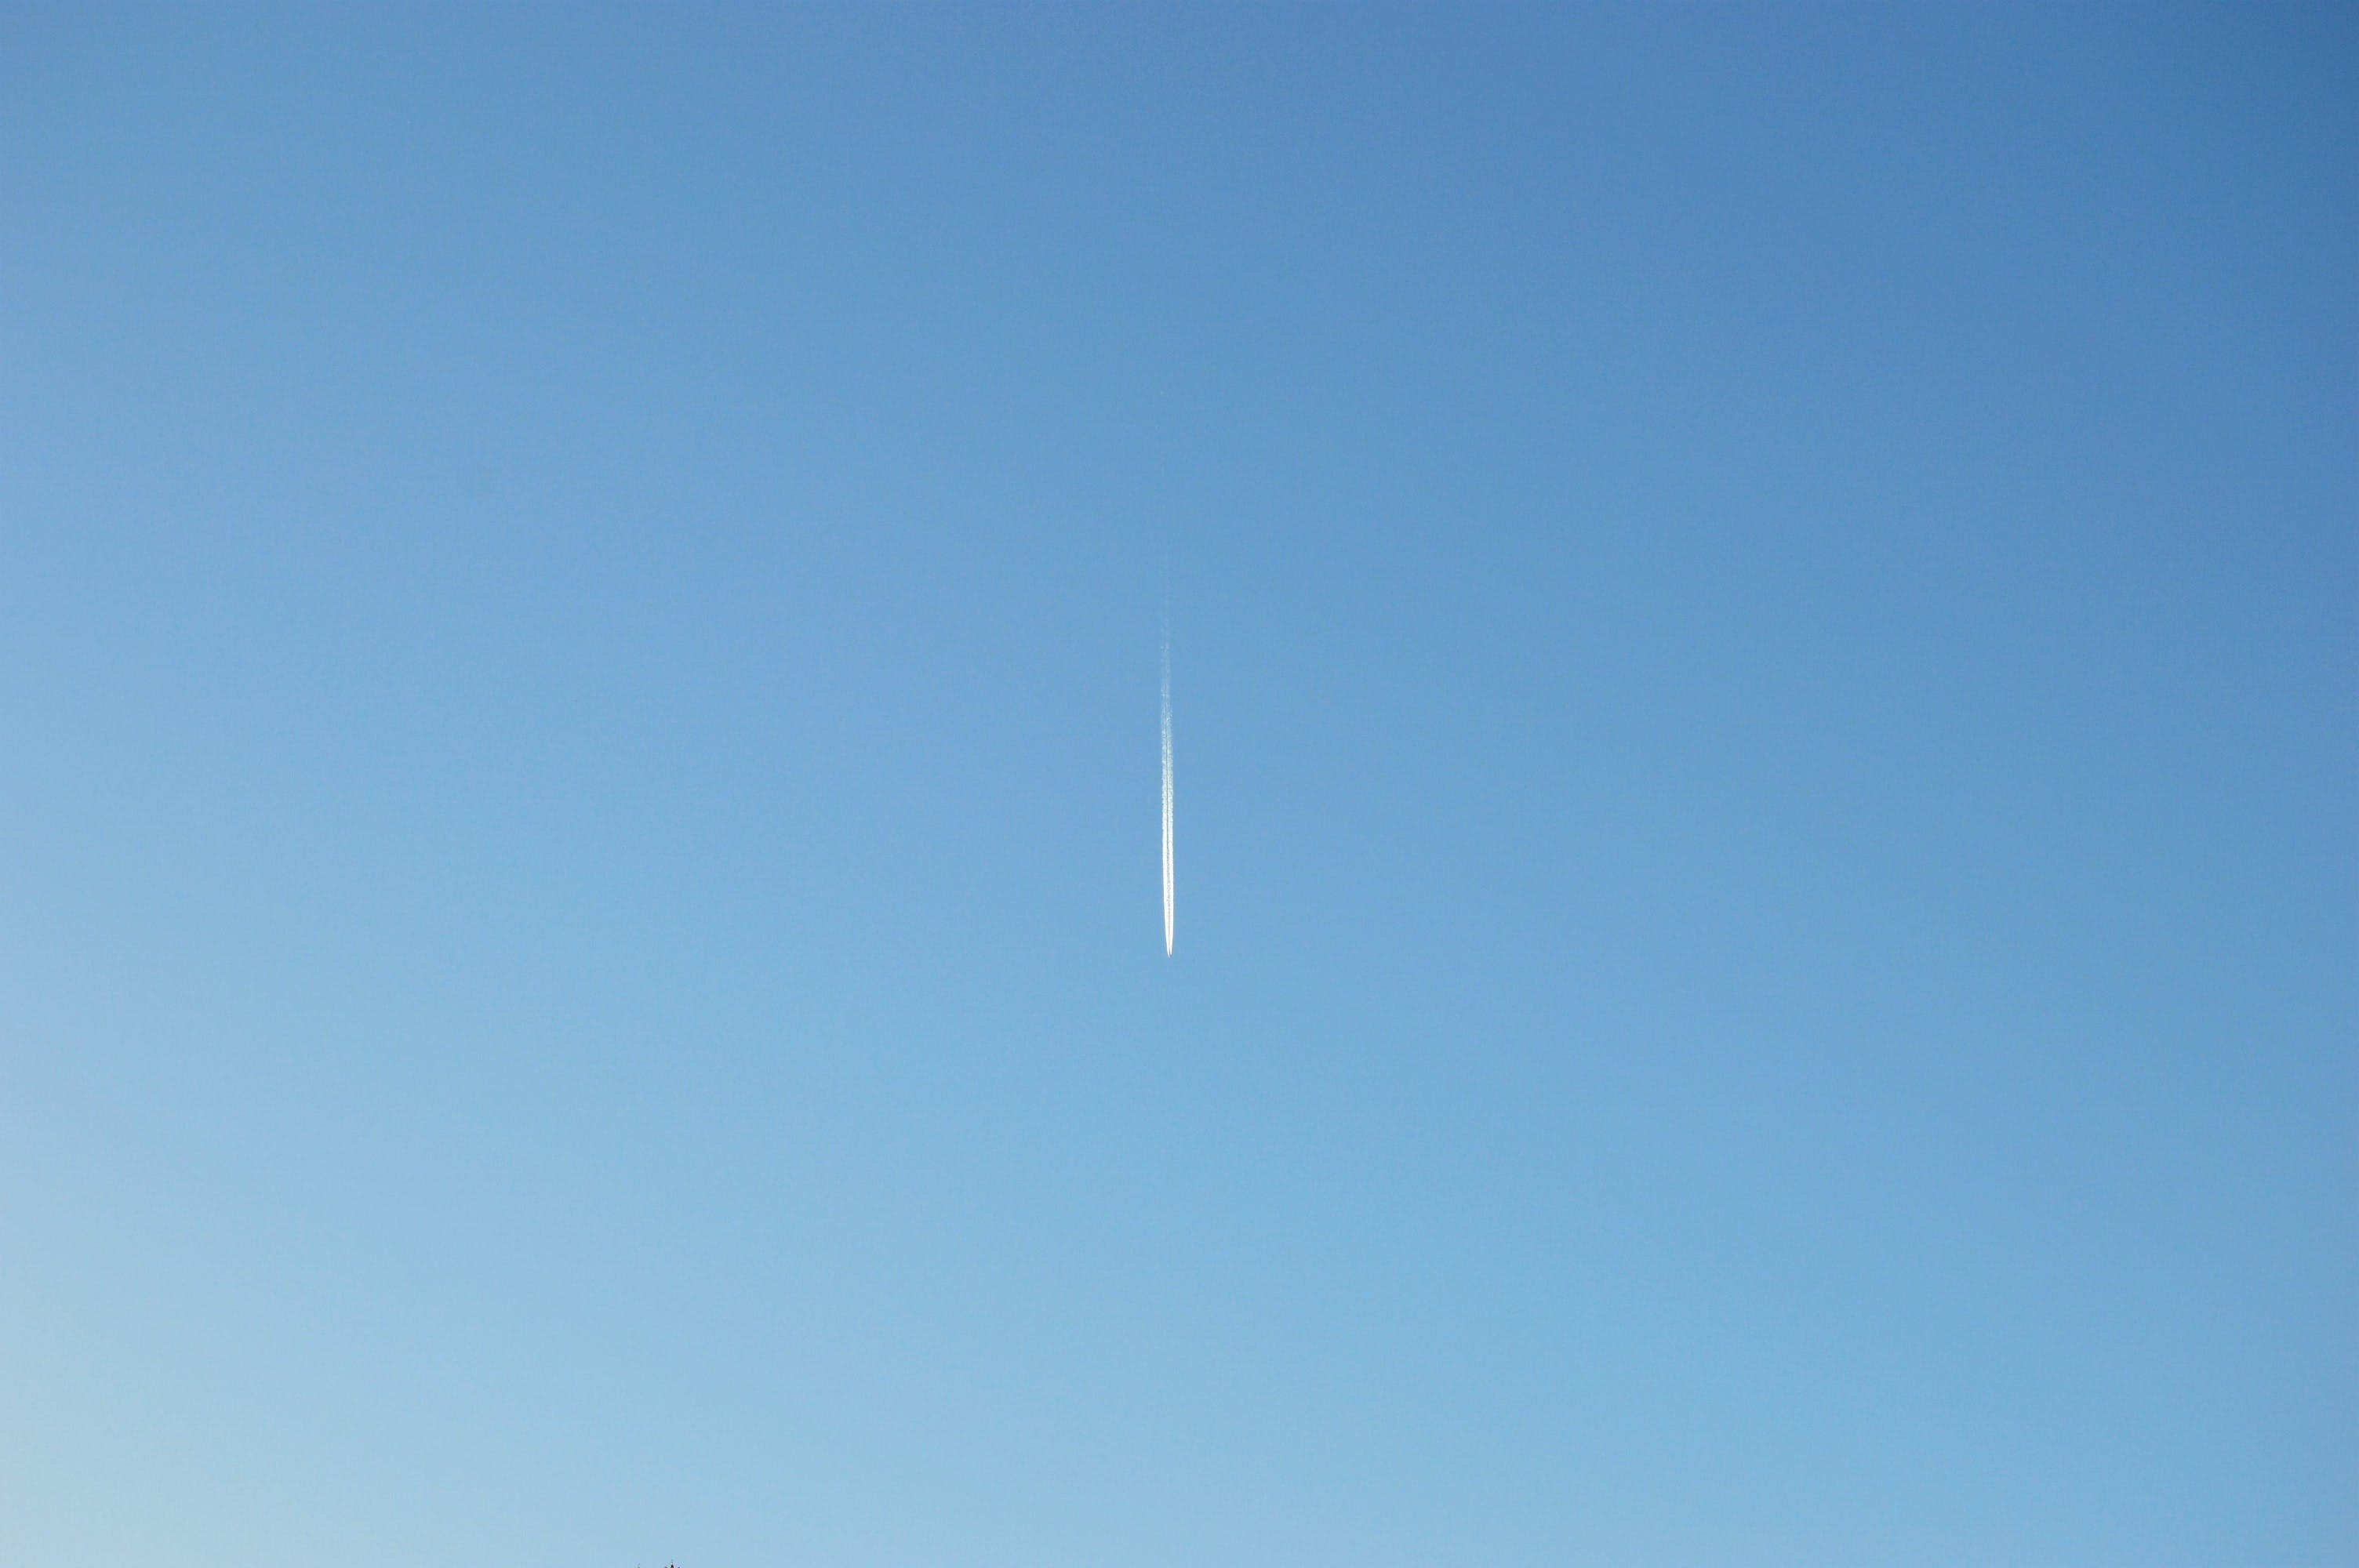 Free stock photo of sky, blue, summer, airplane